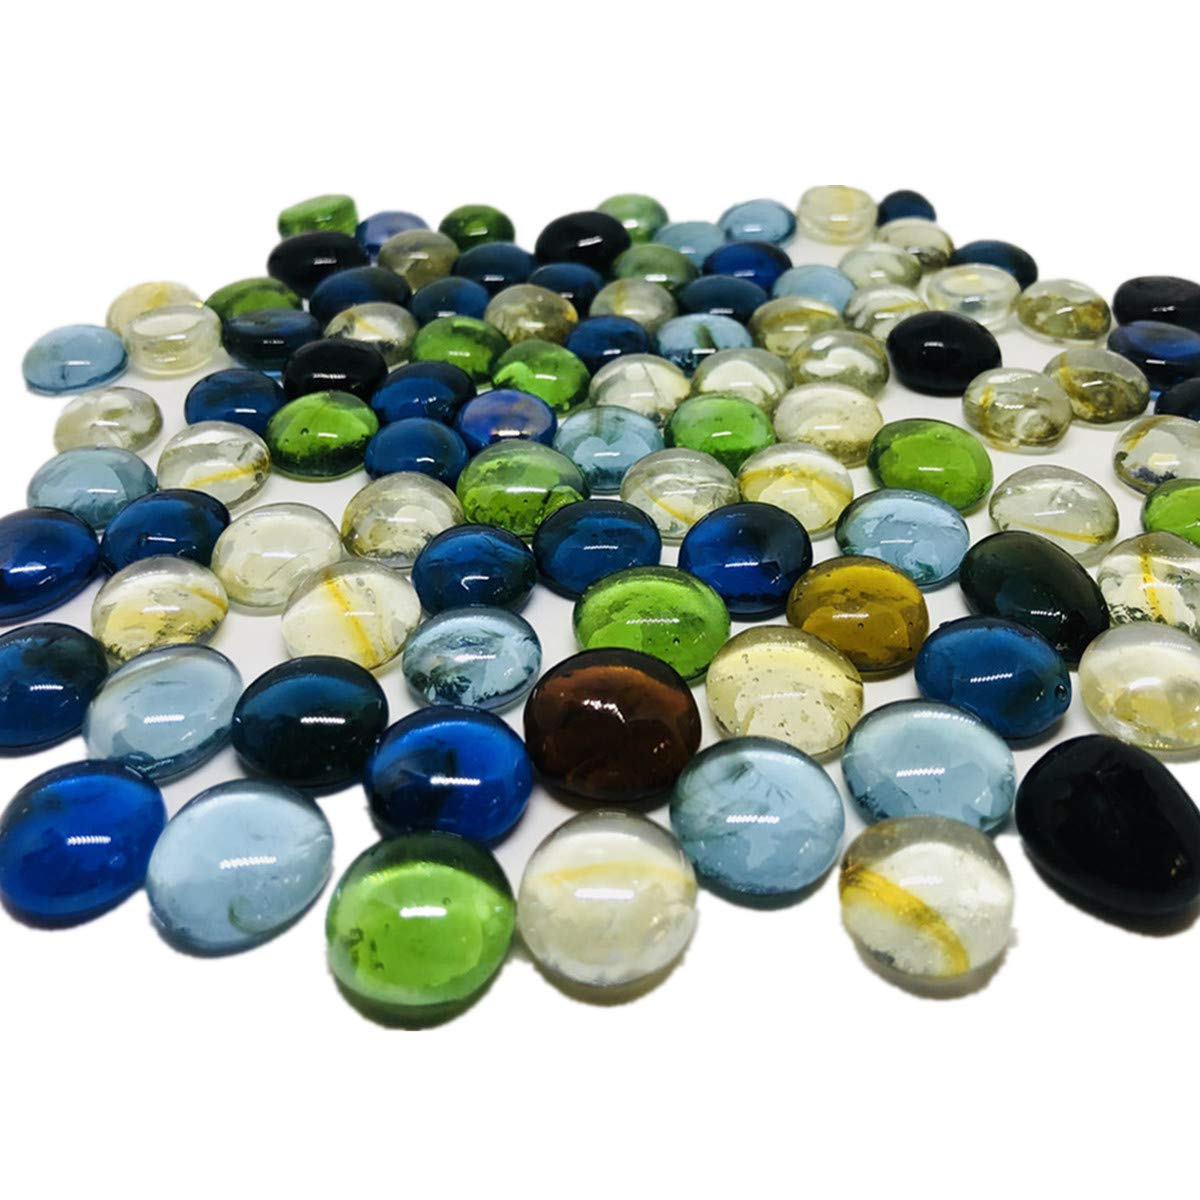 TSY TOOL 3 Lb (Approx 300 Count) 3 Bags Mixed Color Glass Gems Pebbles Stones Flat Marbles for Vase Accents and Crafting by TSY TOOL